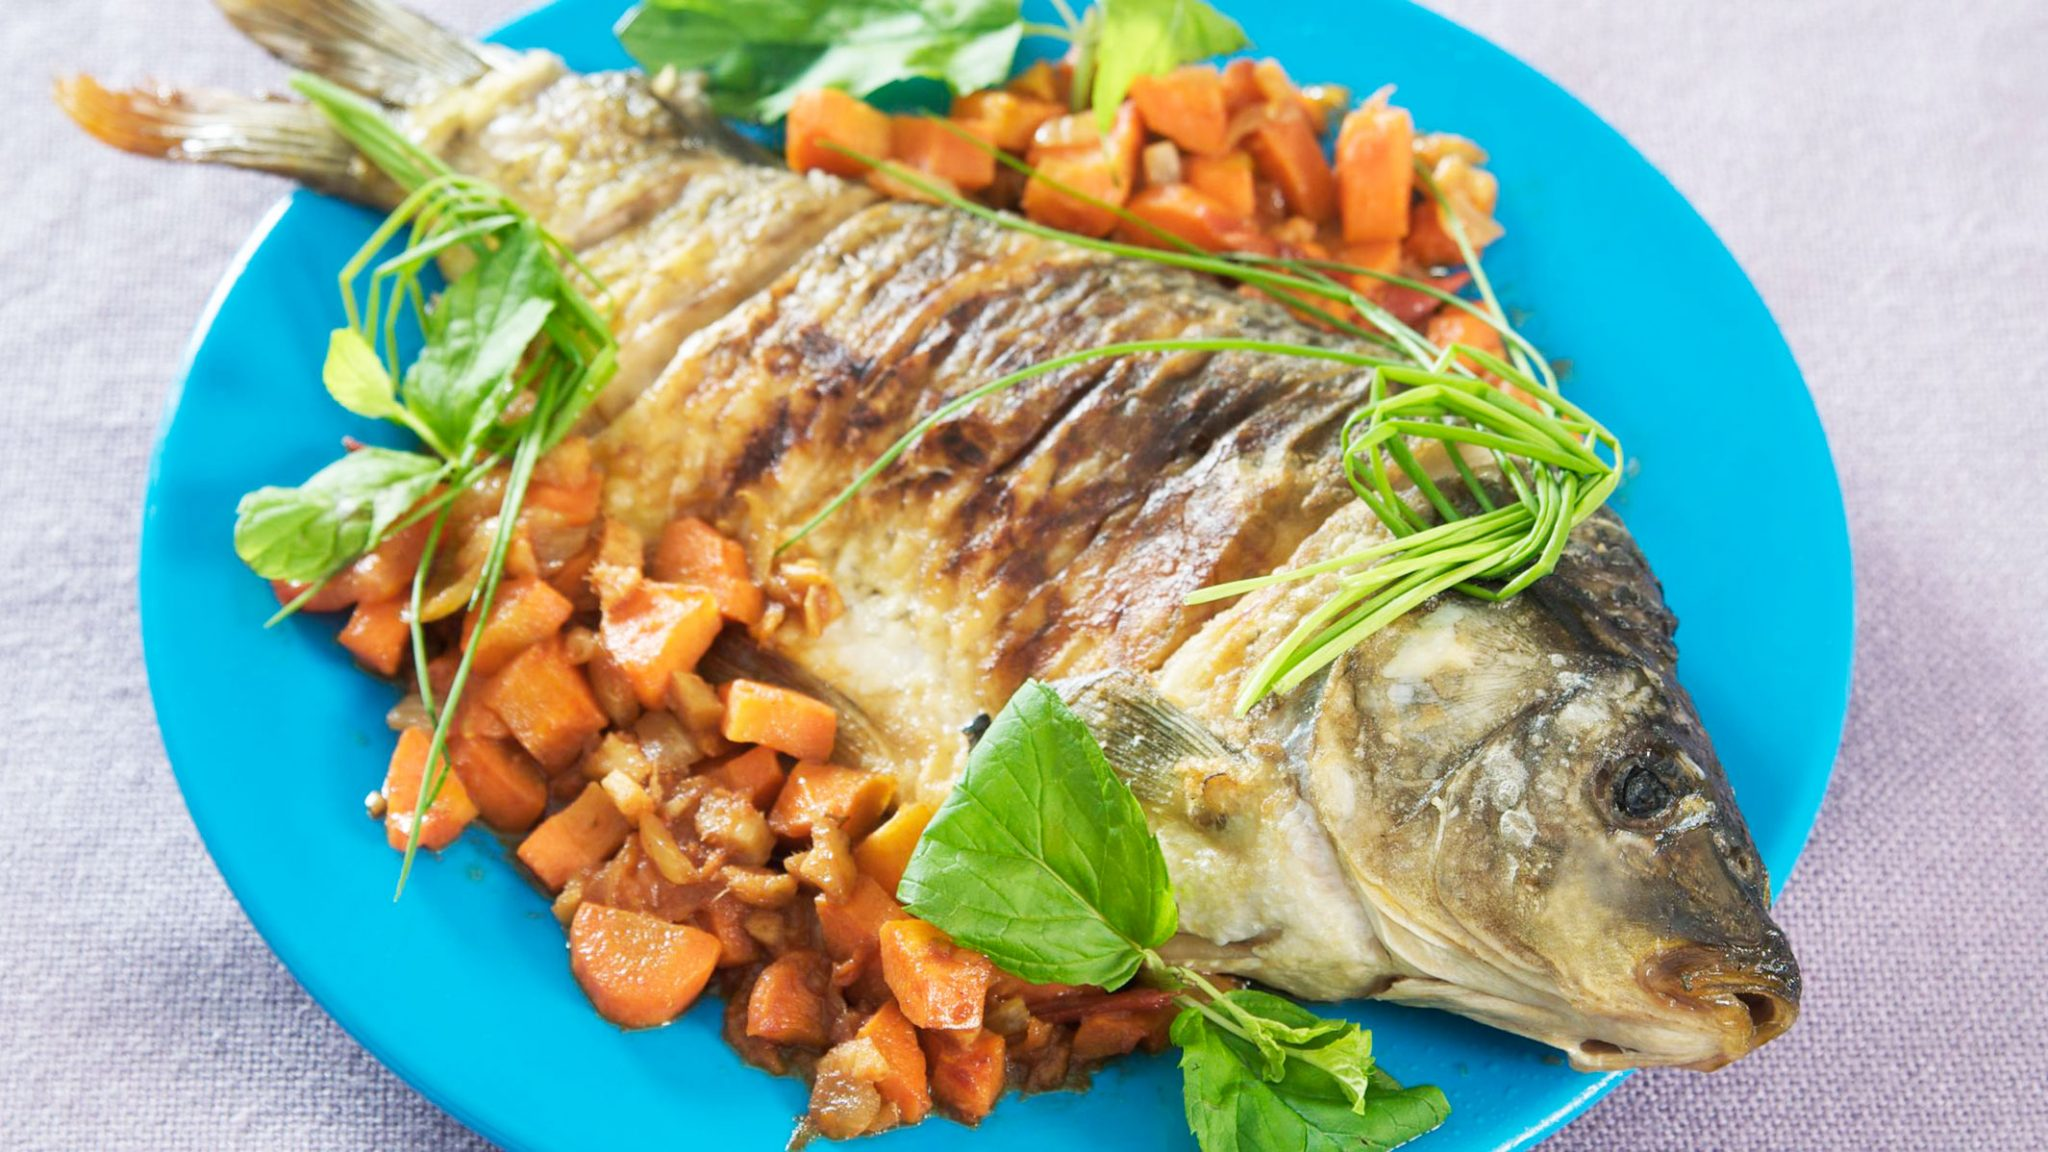 Carp Baked In The Oven Entirely In Foil & cook -Traditional American Thanksgiving Dinner